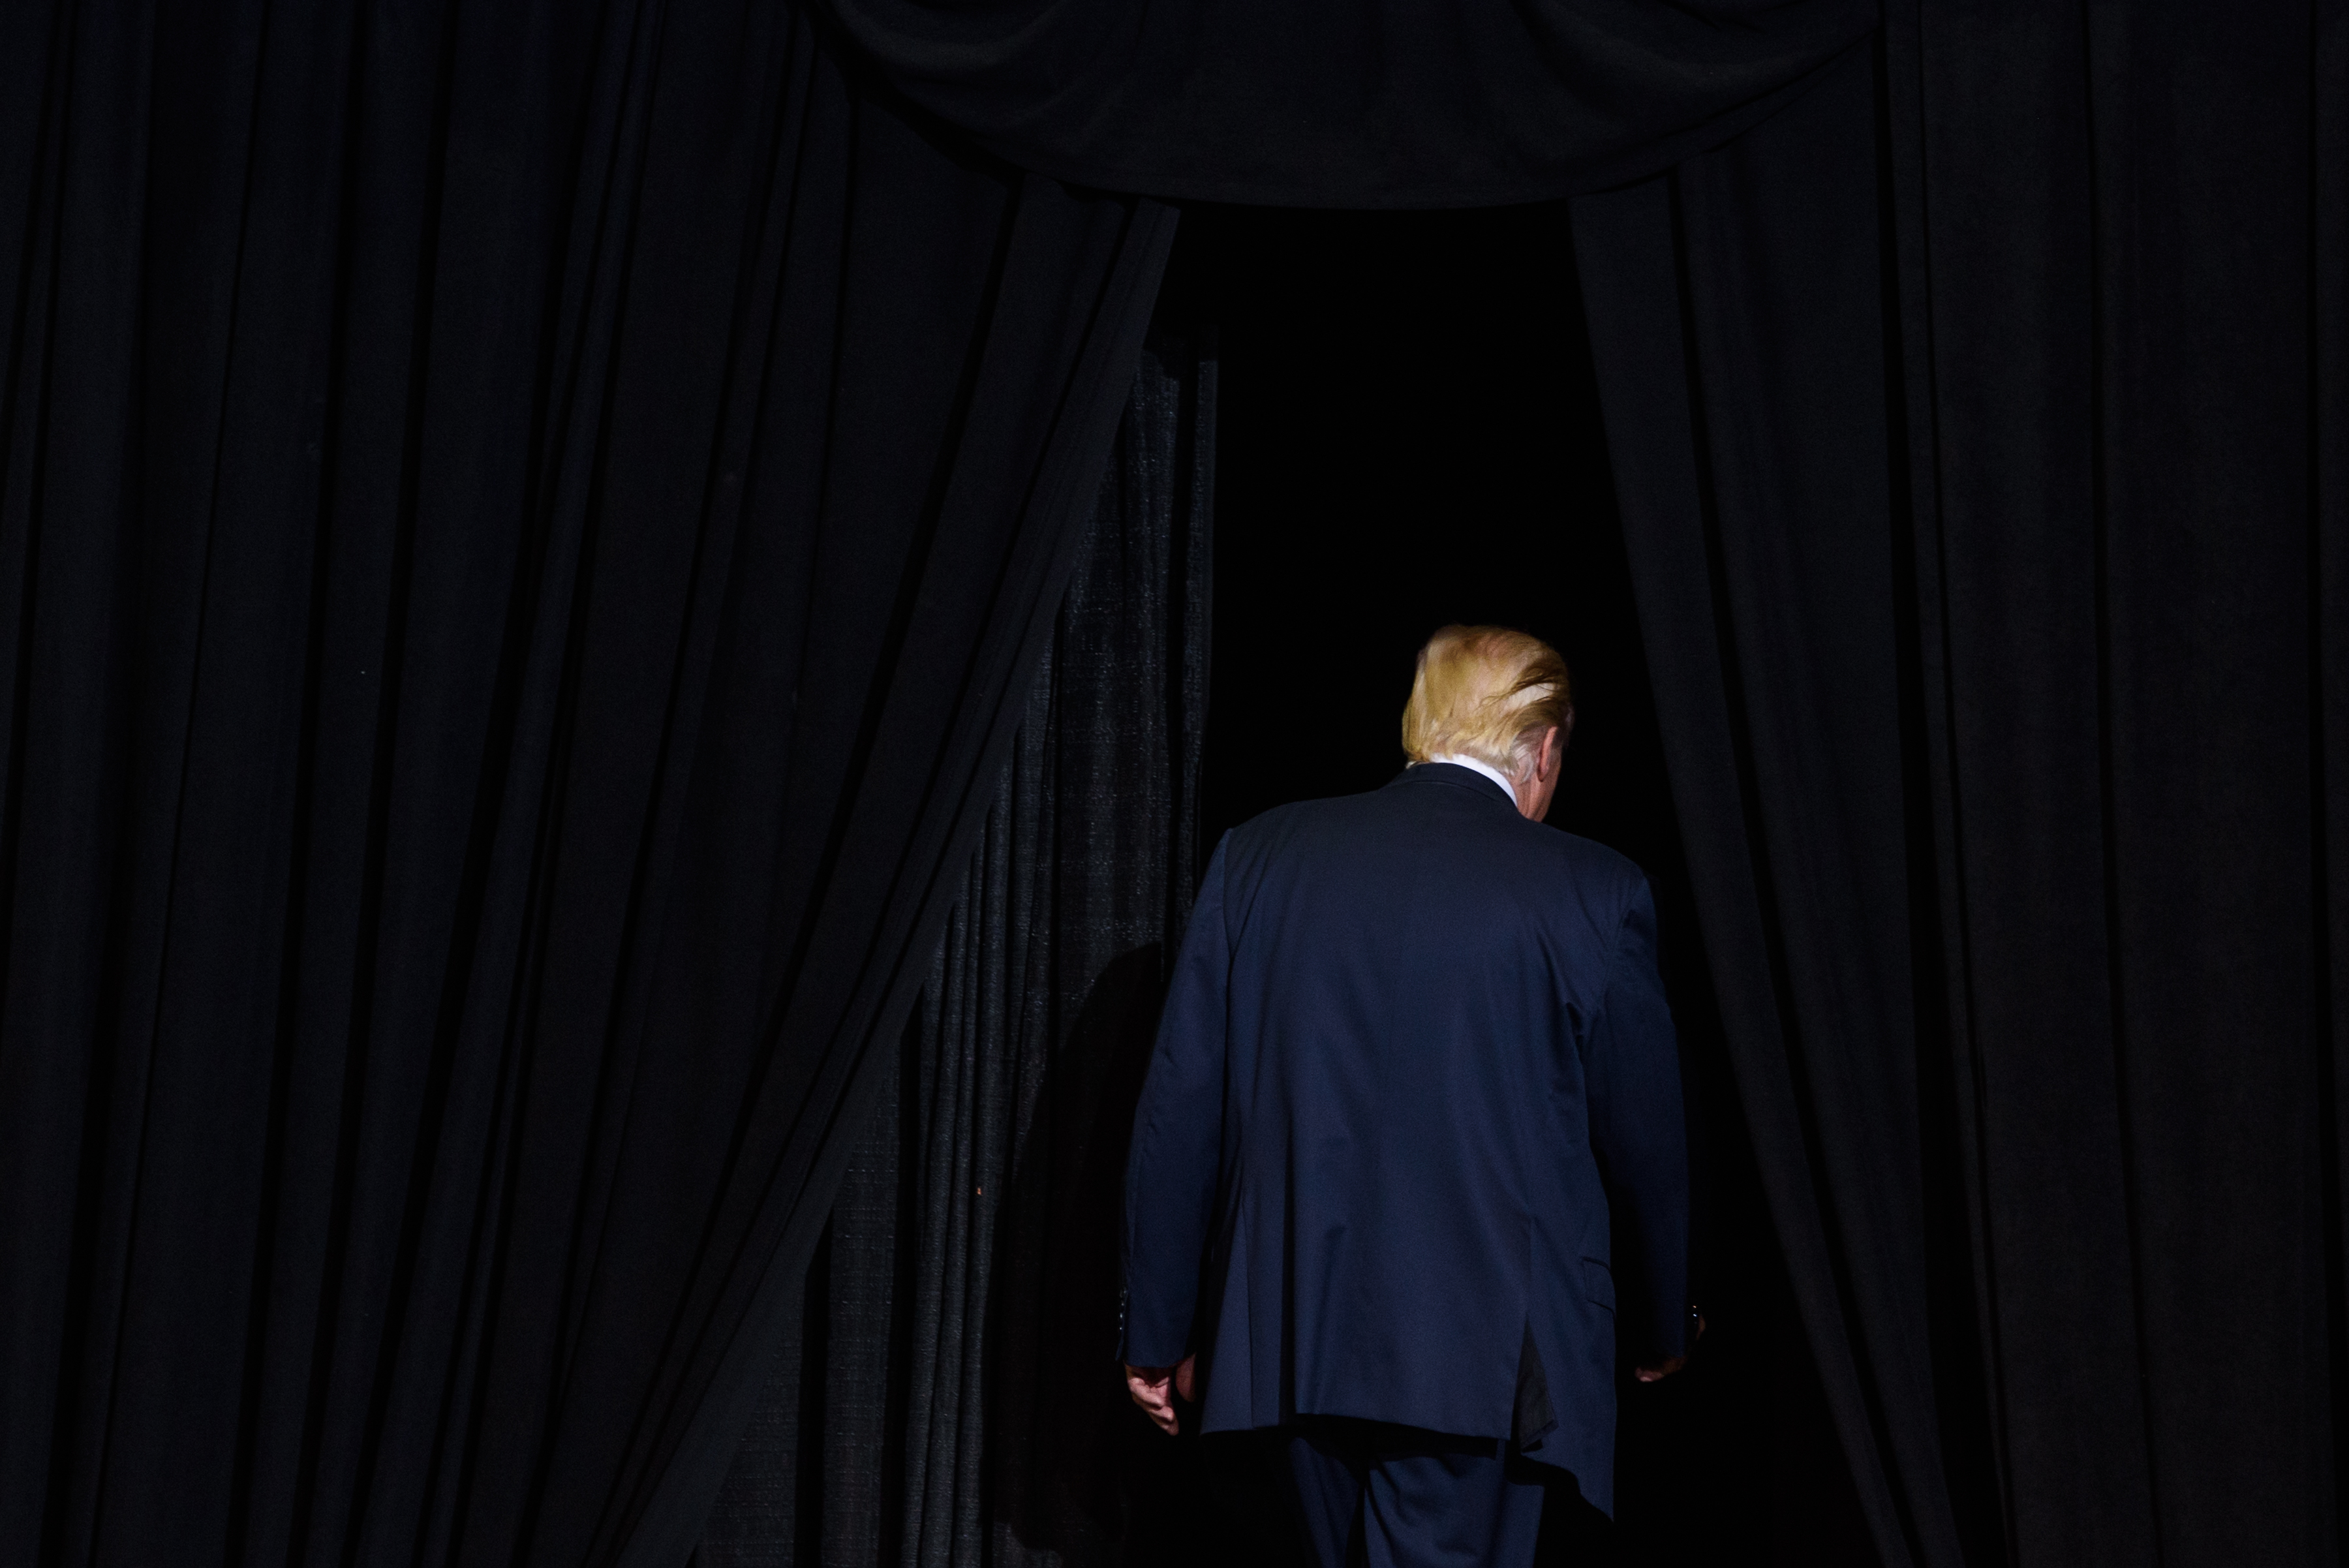 President Donald Trump walks off the stage after his campaign rally at the Big Sandy Superstore Arena on August 3, 2017 in Huntington, West Virginia.